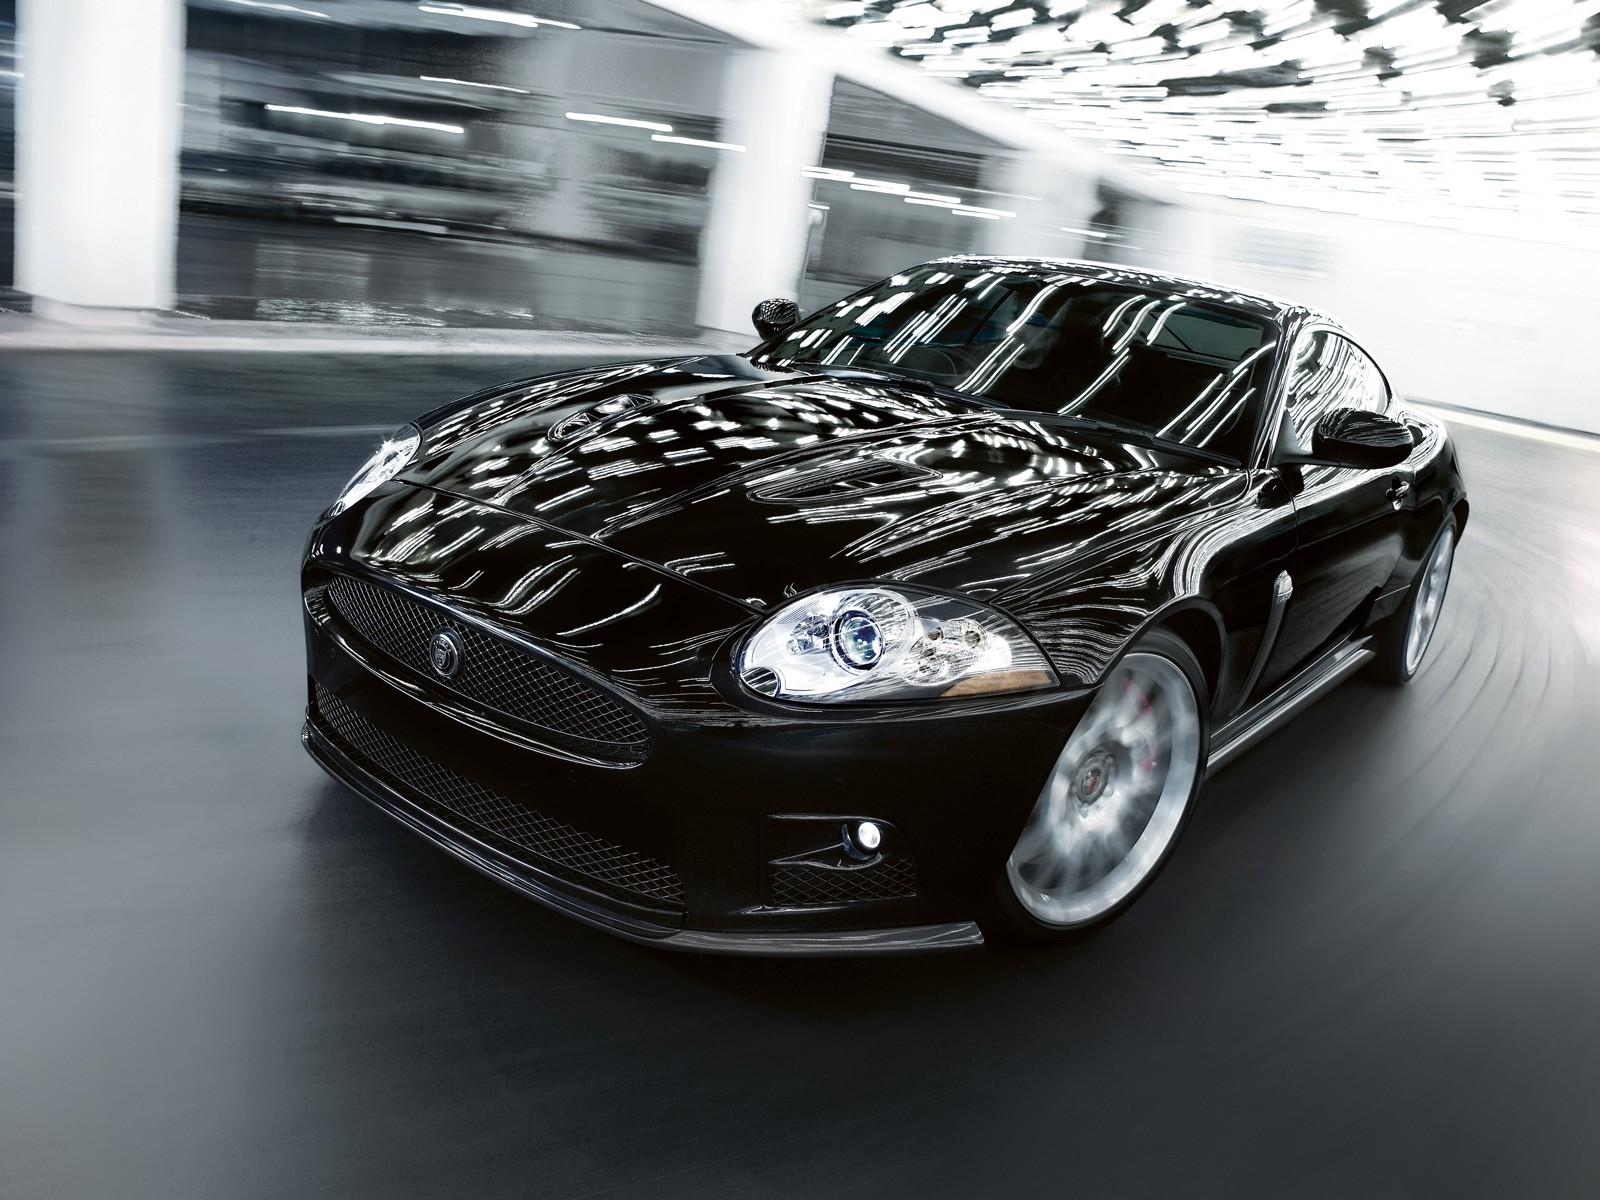 Jaguar Car Wallpapers,Jaguar Car Wallpaper,jaguar Wallpapers Hd,Jaguar Car  Wallpapers Widescreen